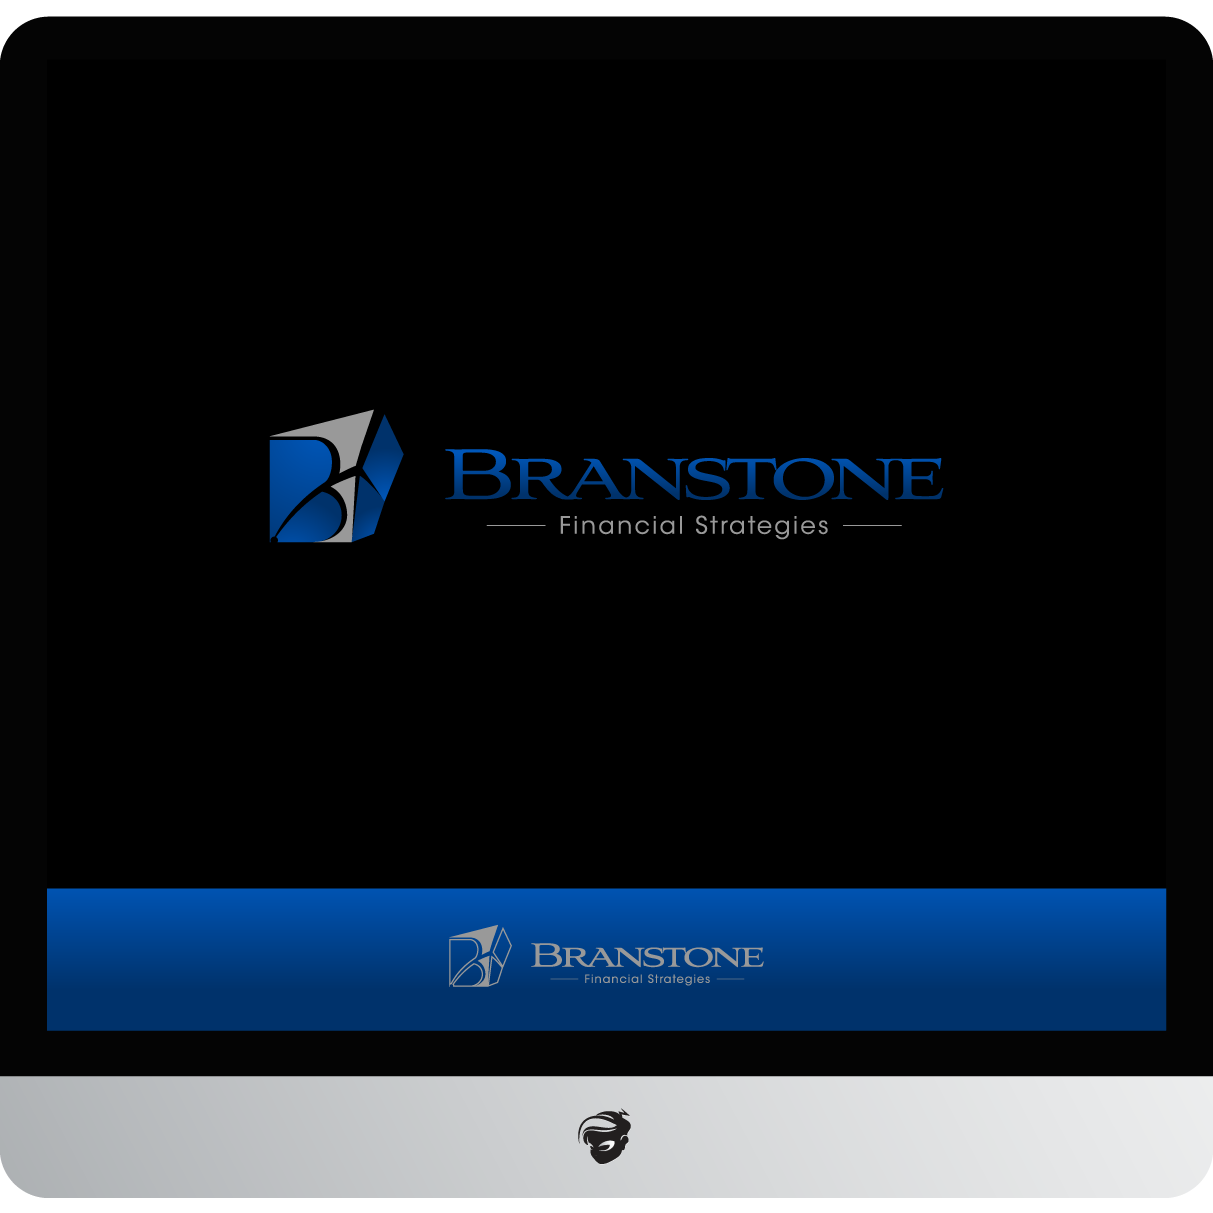 Logo Design by zesthar - Entry No. 232 in the Logo Design Contest Inspiring Logo Design for Branstone Financial Strategies.